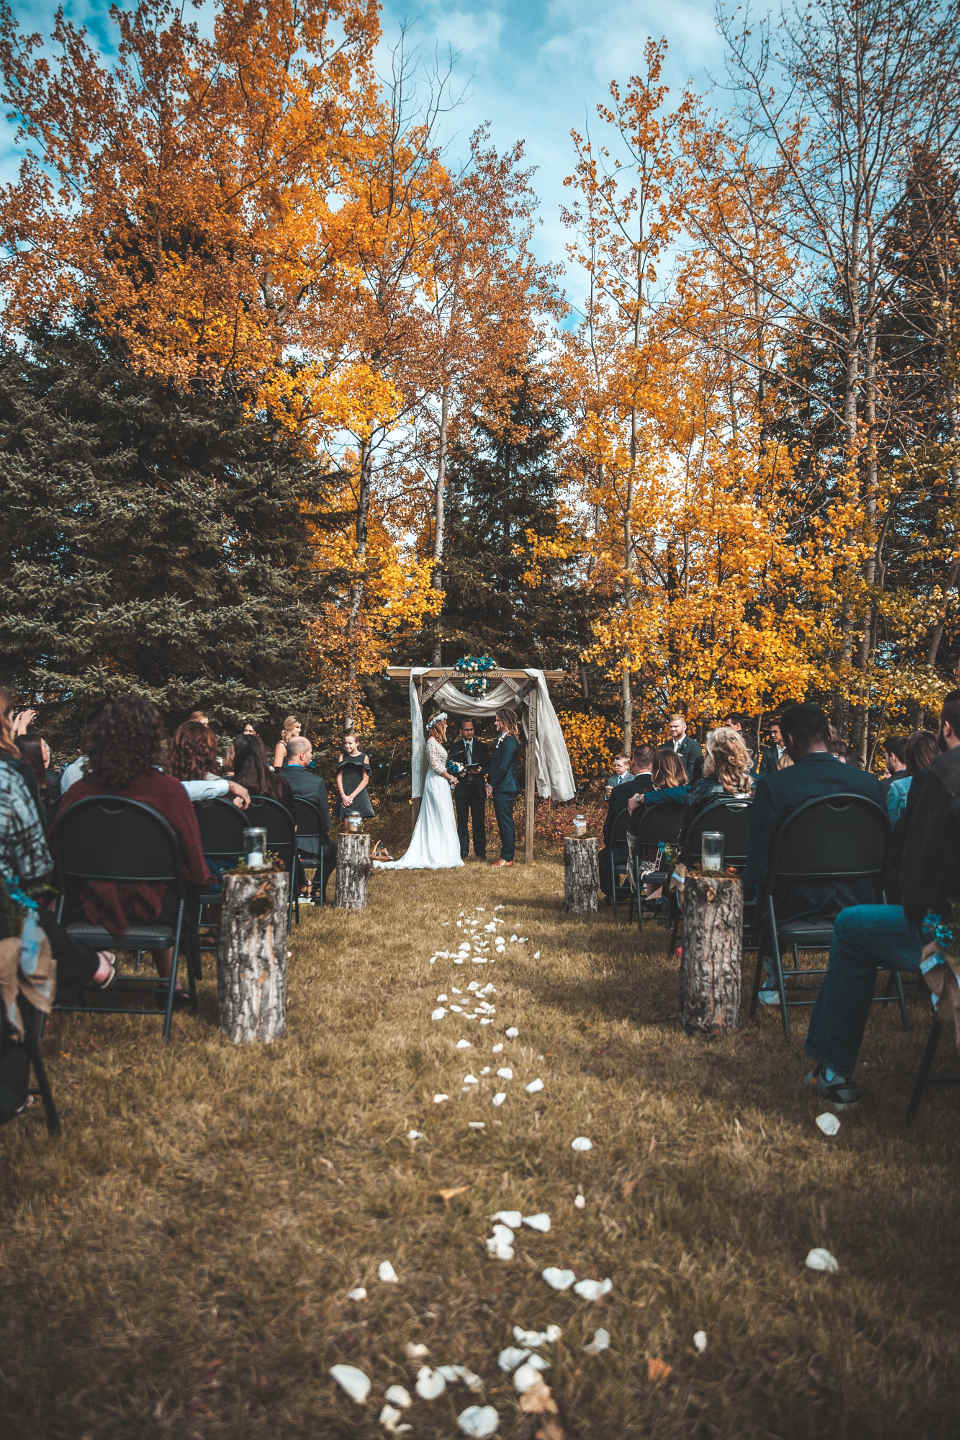 The average length of the wedding ceremony is about 20-30 minutes